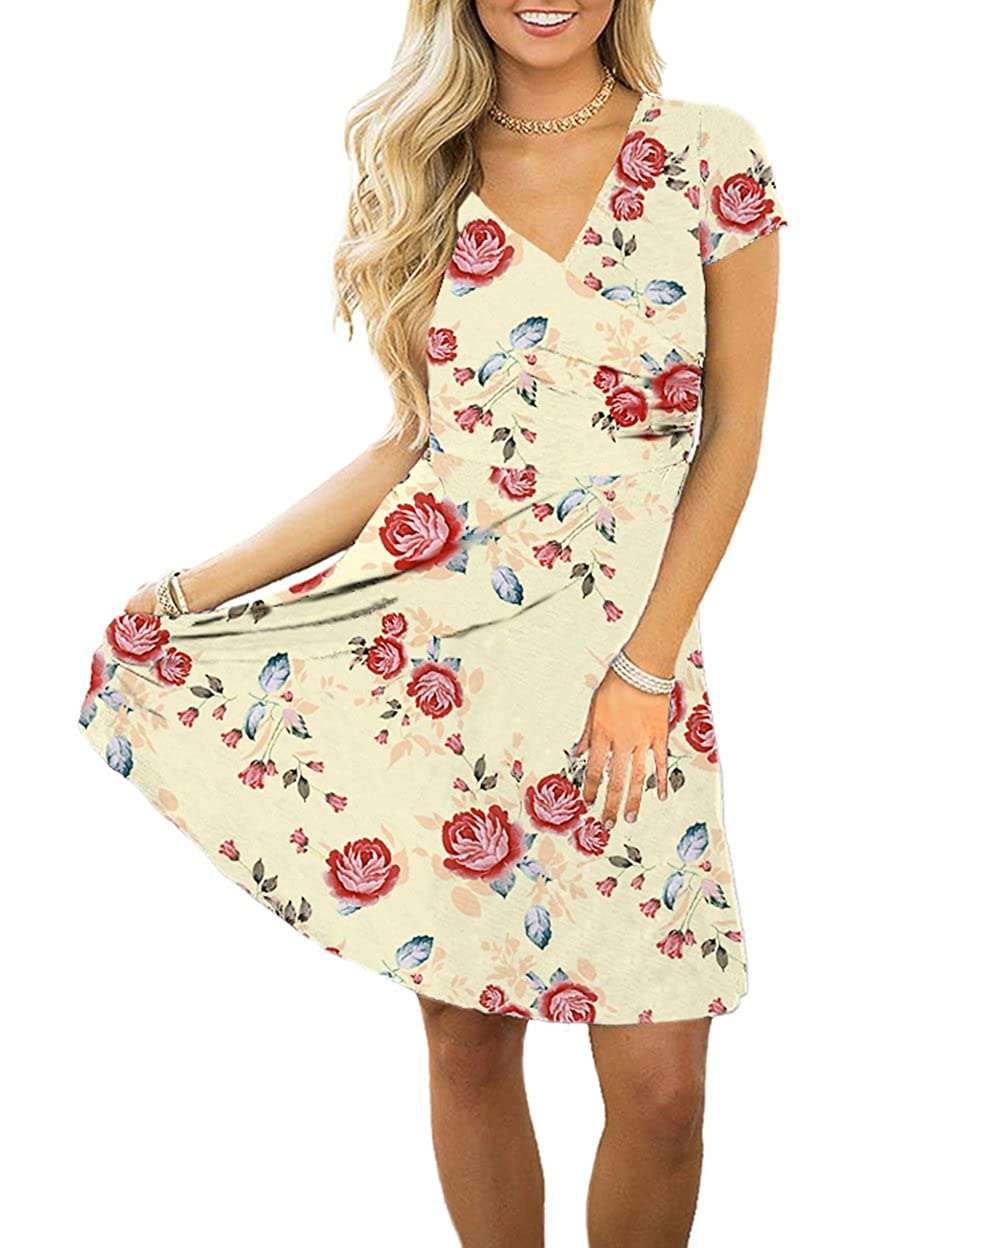 Beige Swiland Women V Neck Short Sleeve Floral Printed Casual Retro Wrap A Line Dress